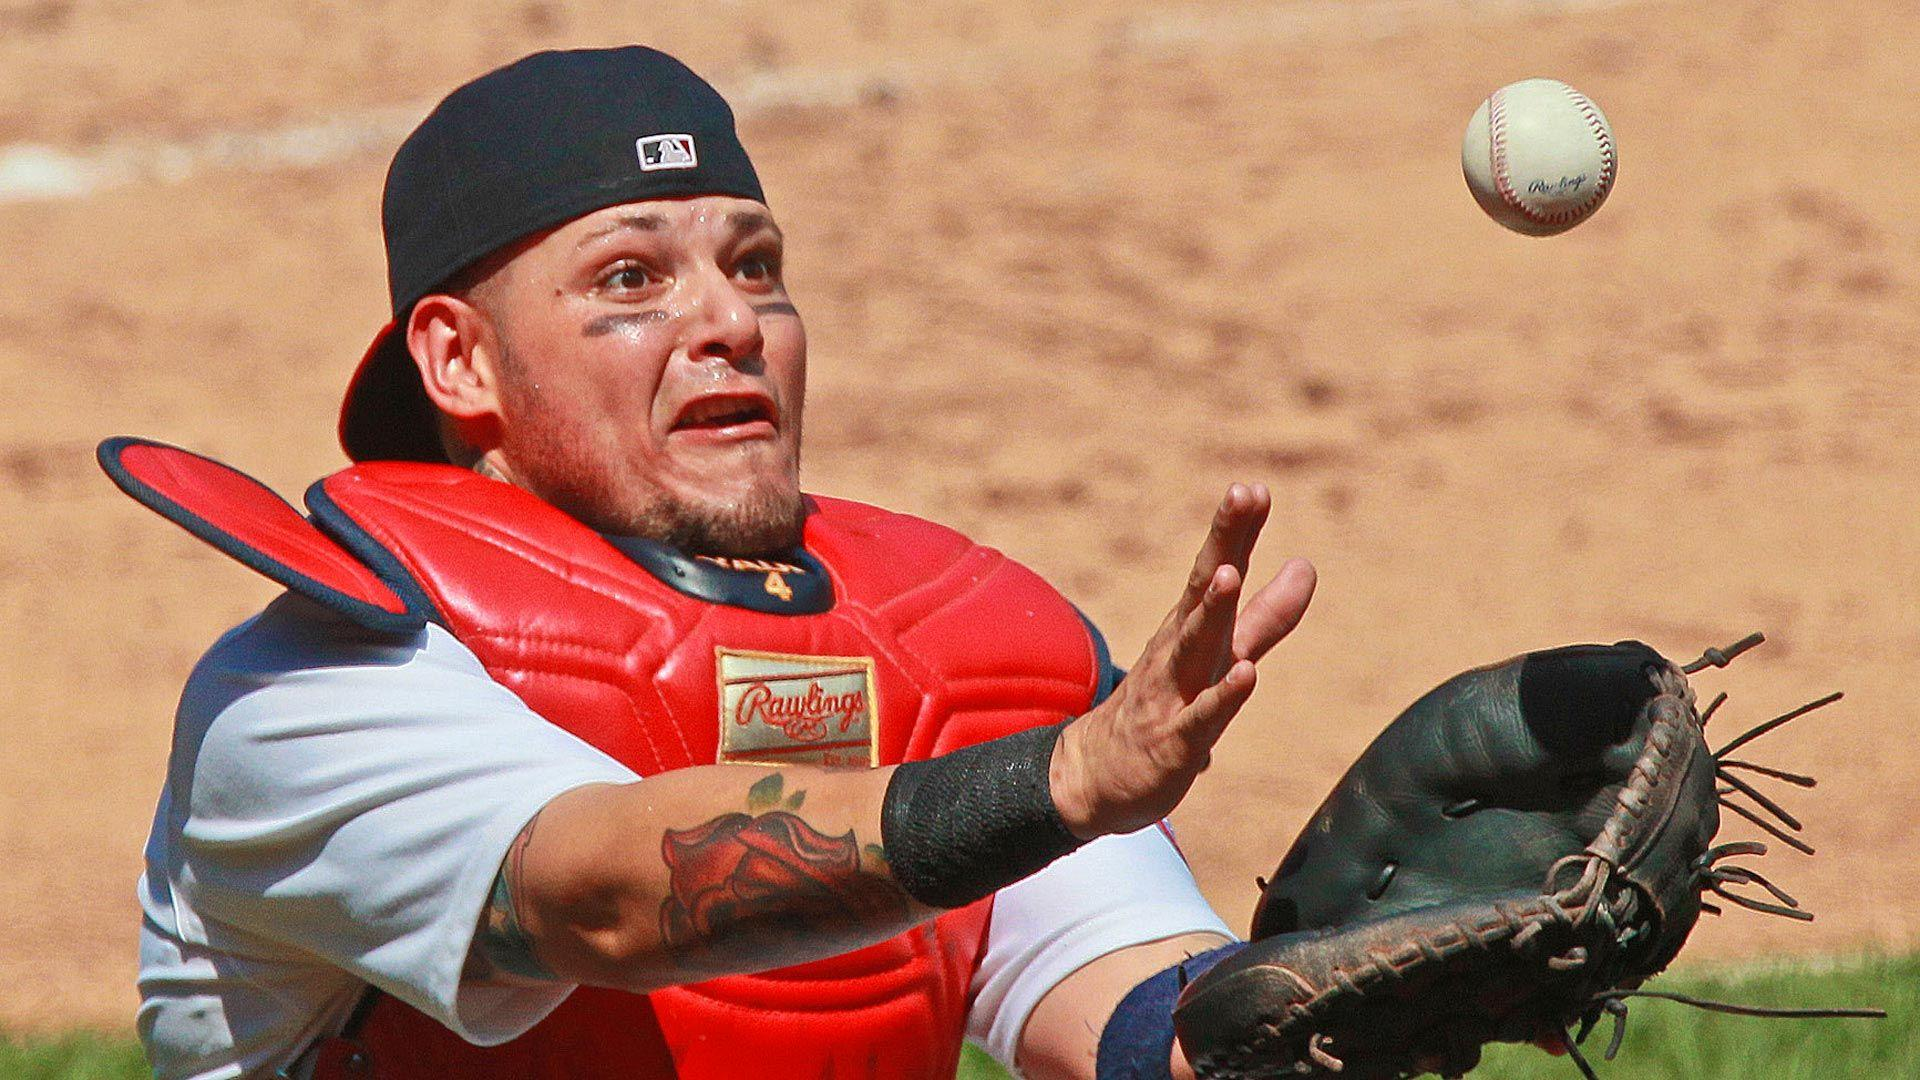 Yadier Molina's surprisingly weak Hall of Fame case